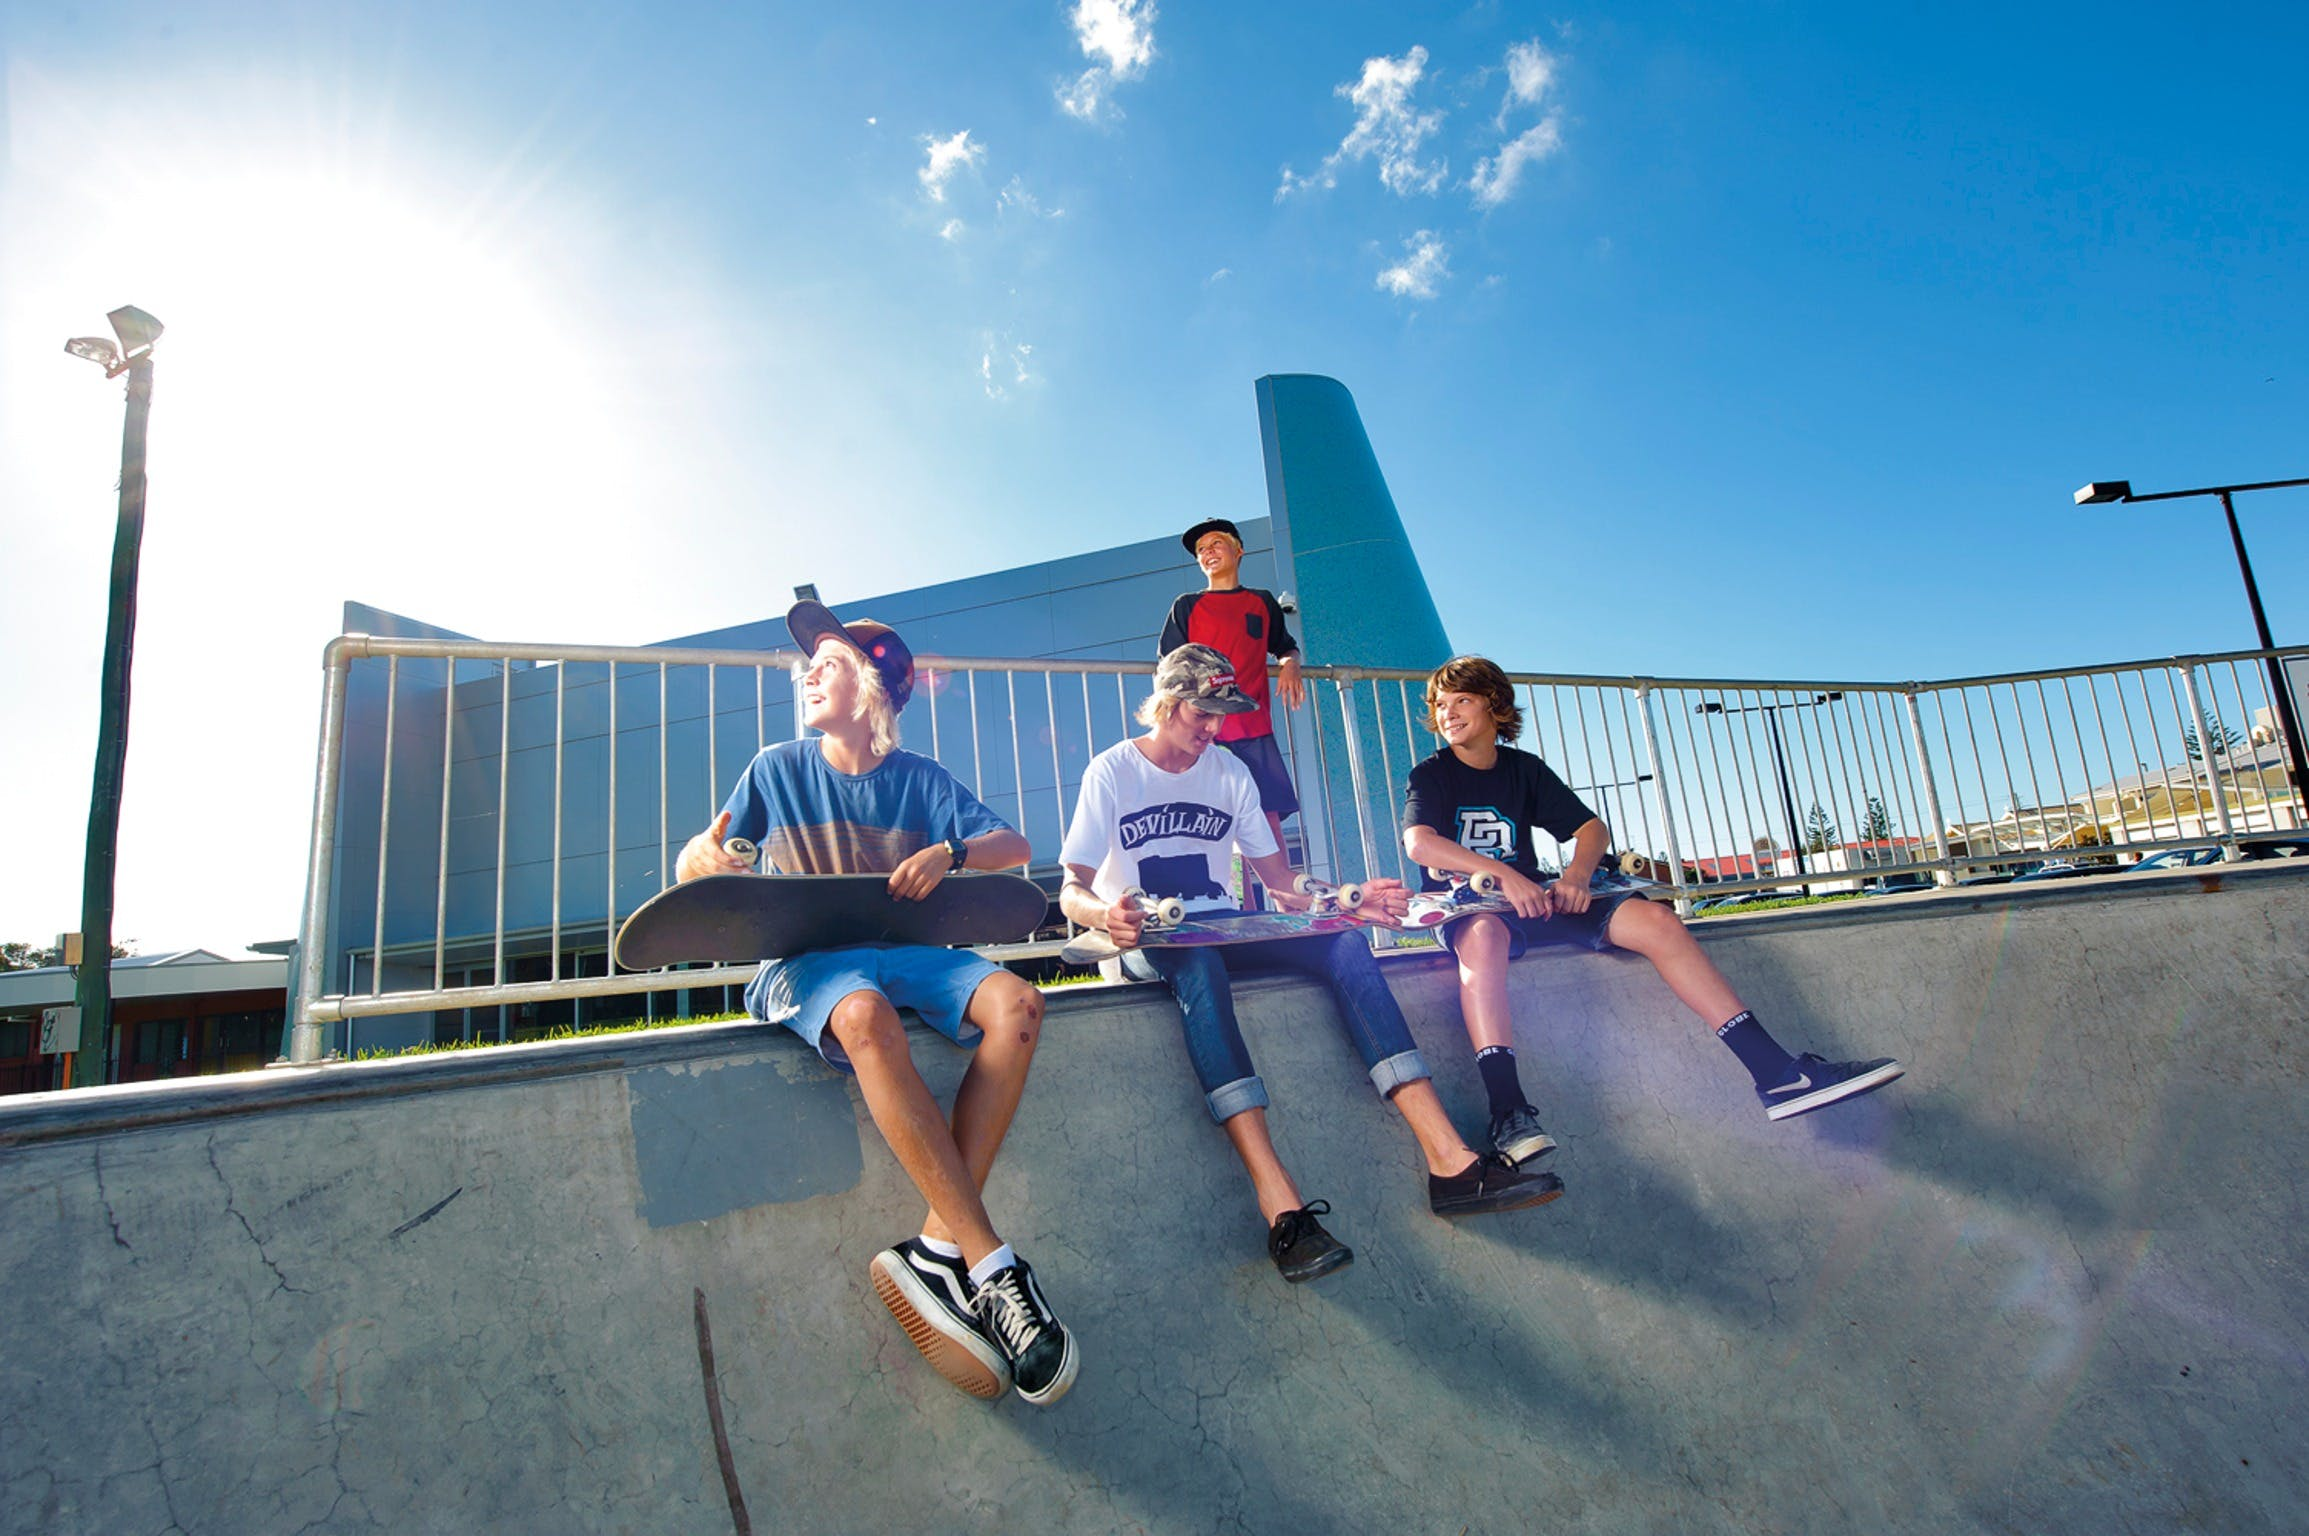 Fair Go Skate Comp - WA Accommodation